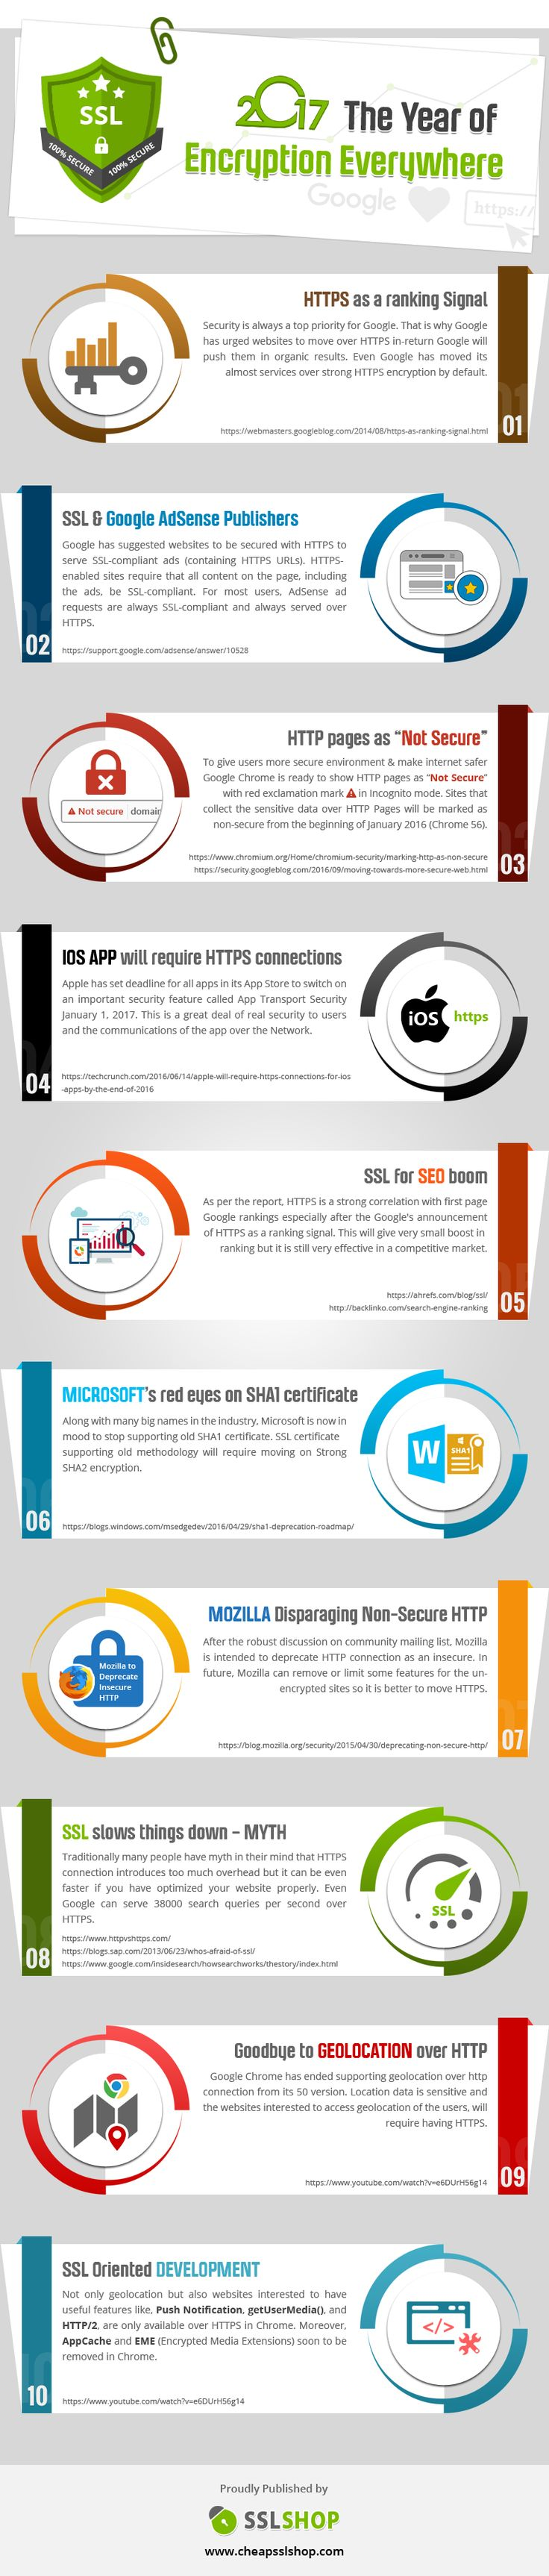 2017 The Year Of Encryption Everywhere #Infographic #Internet #Web